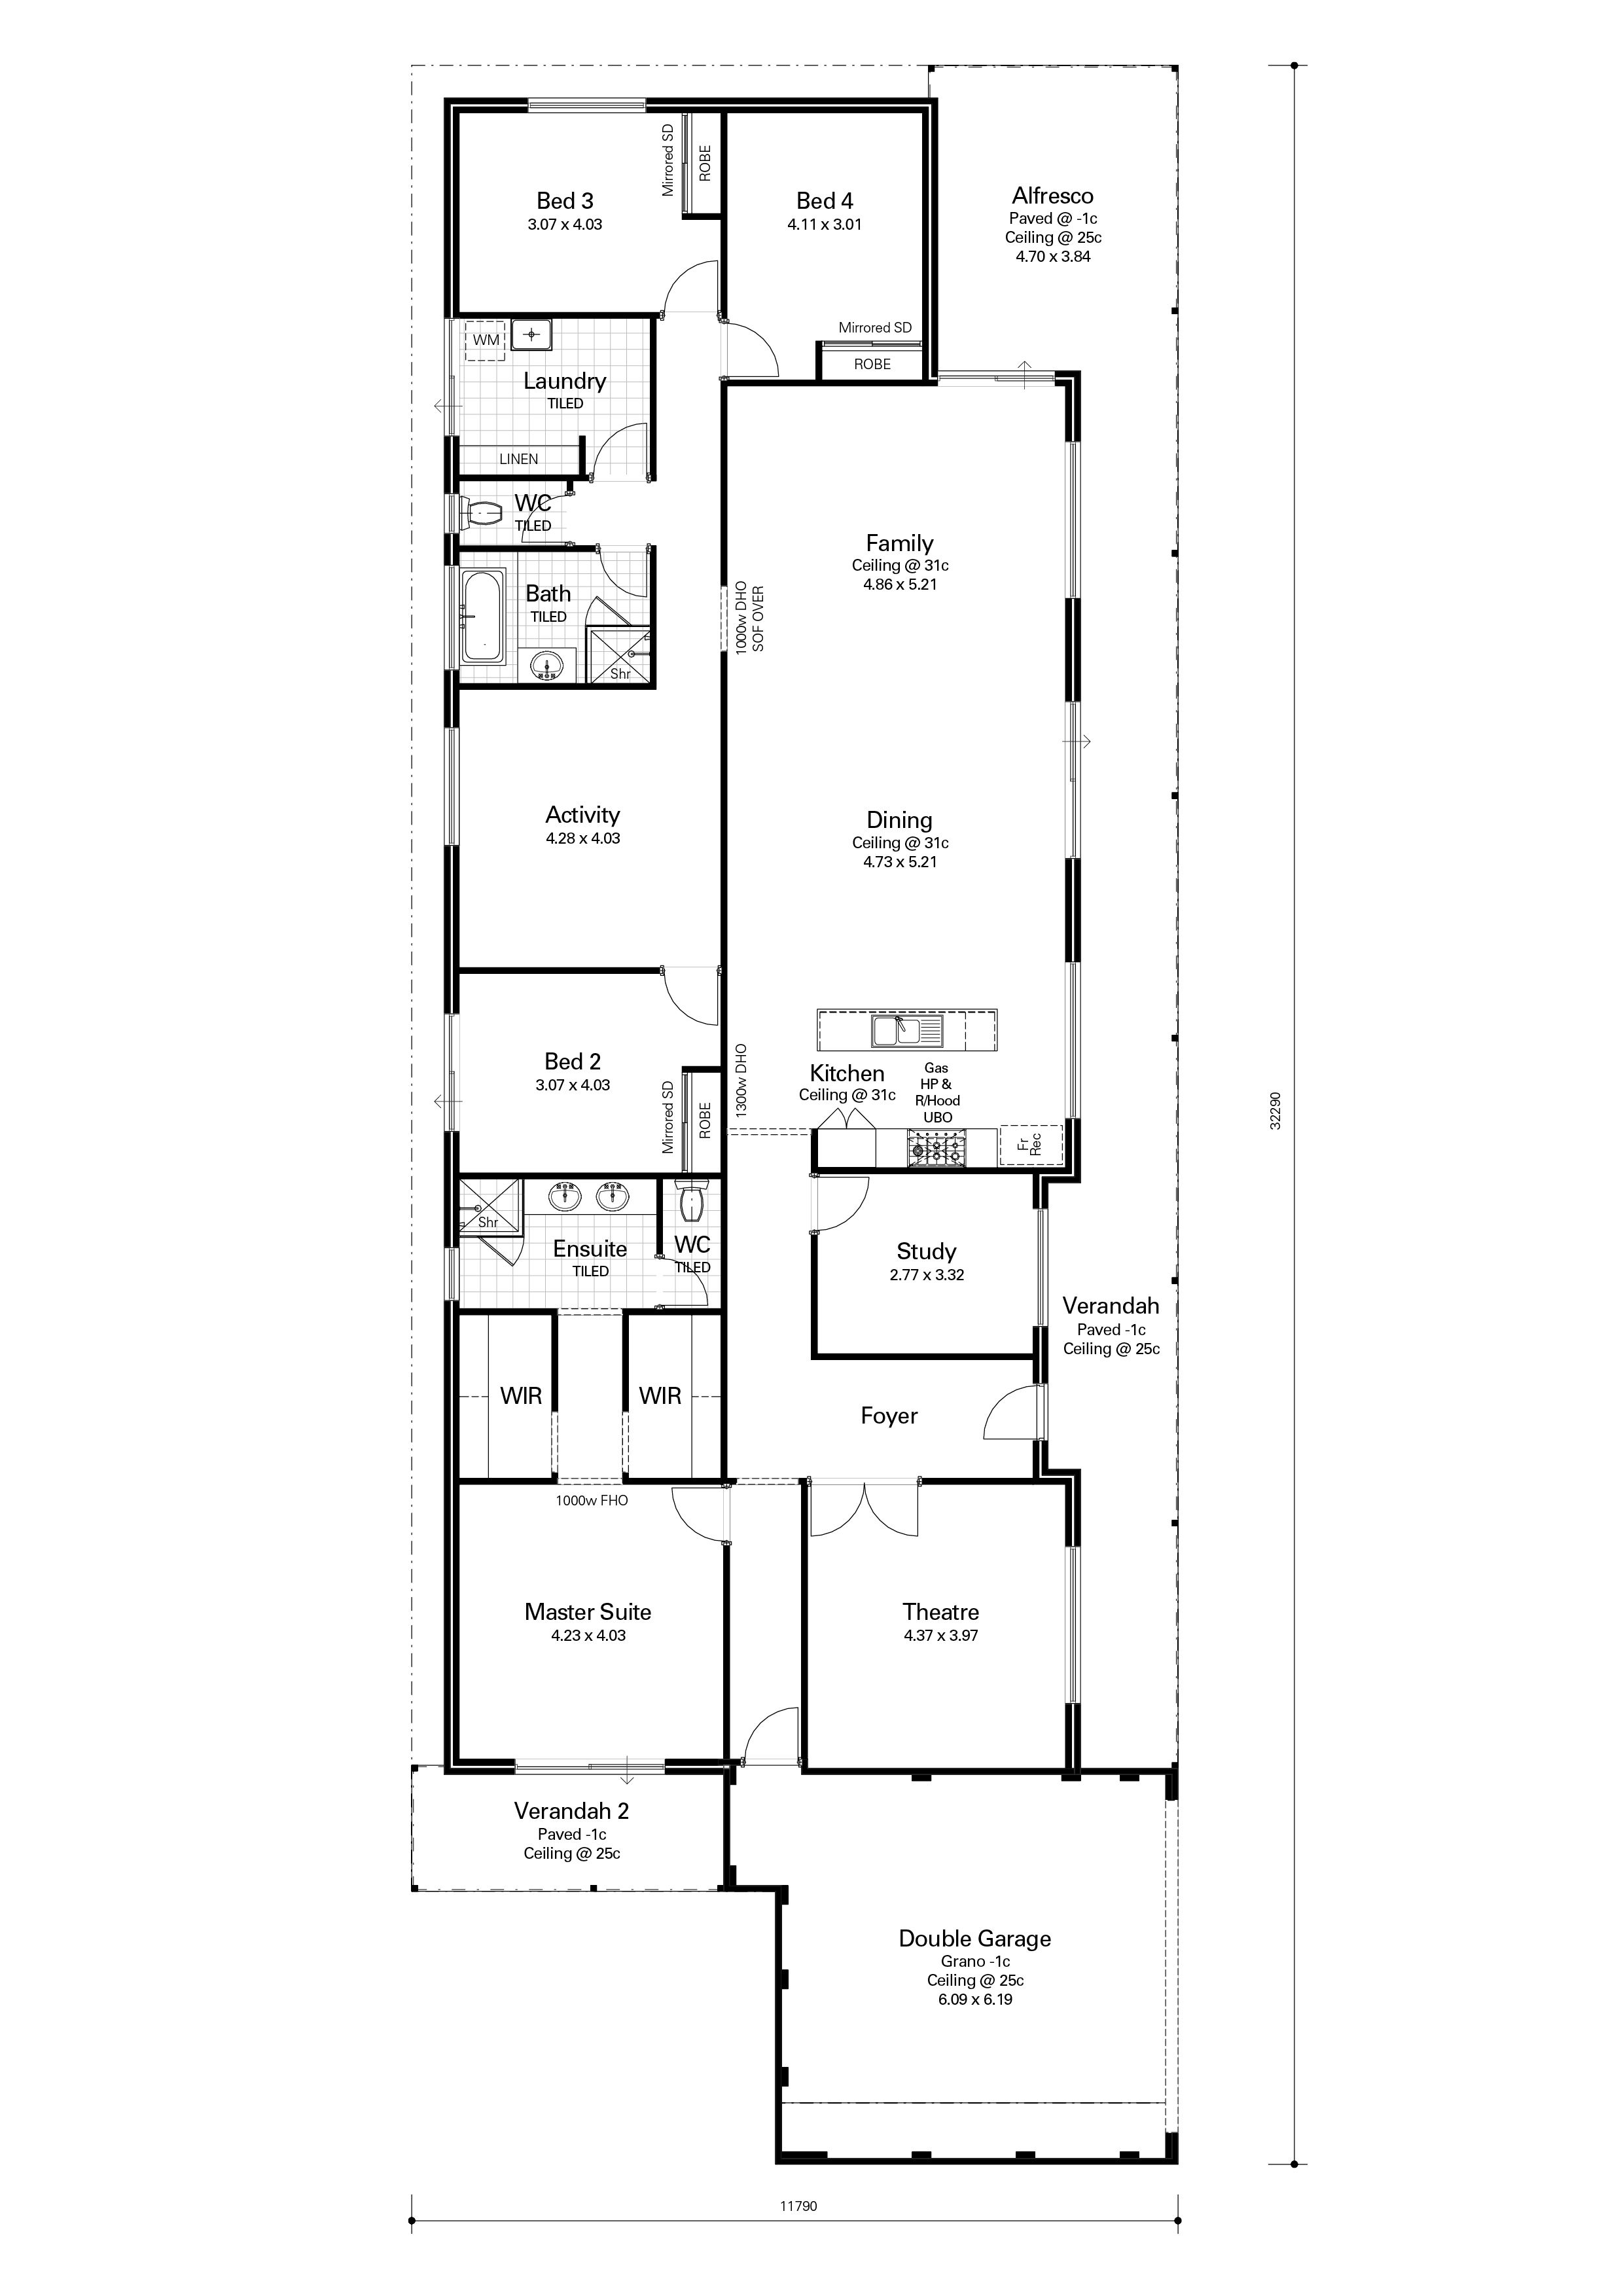 Ashby - Redink. Rear load? - put the garage where bedroom 3 /4 are ...